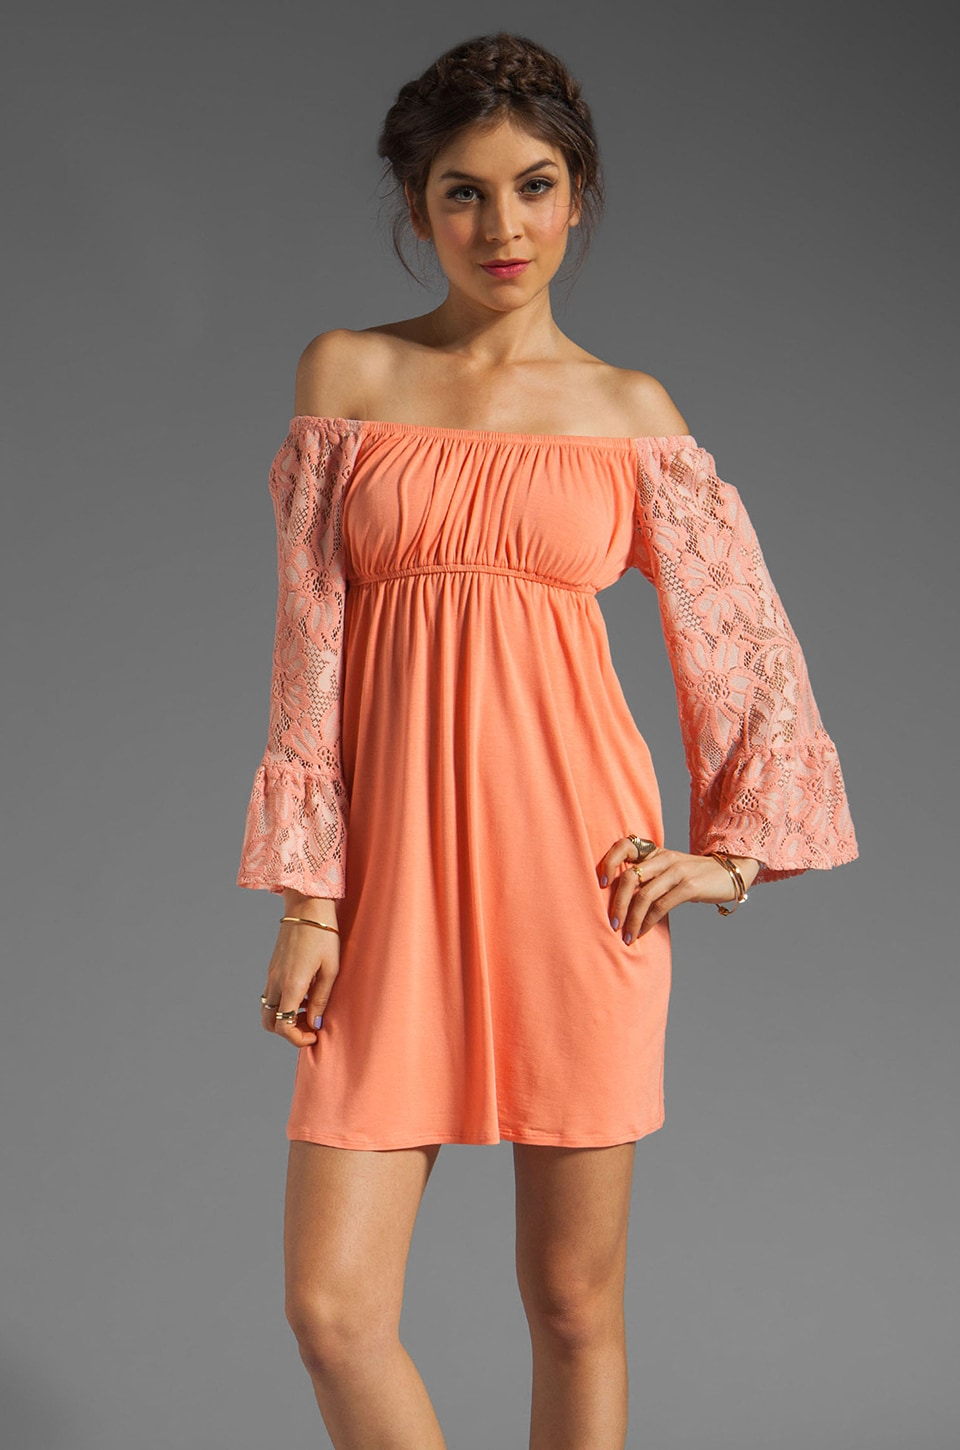 VAVA by Joy Han Skyler Off the Shoulder Dress in Melon